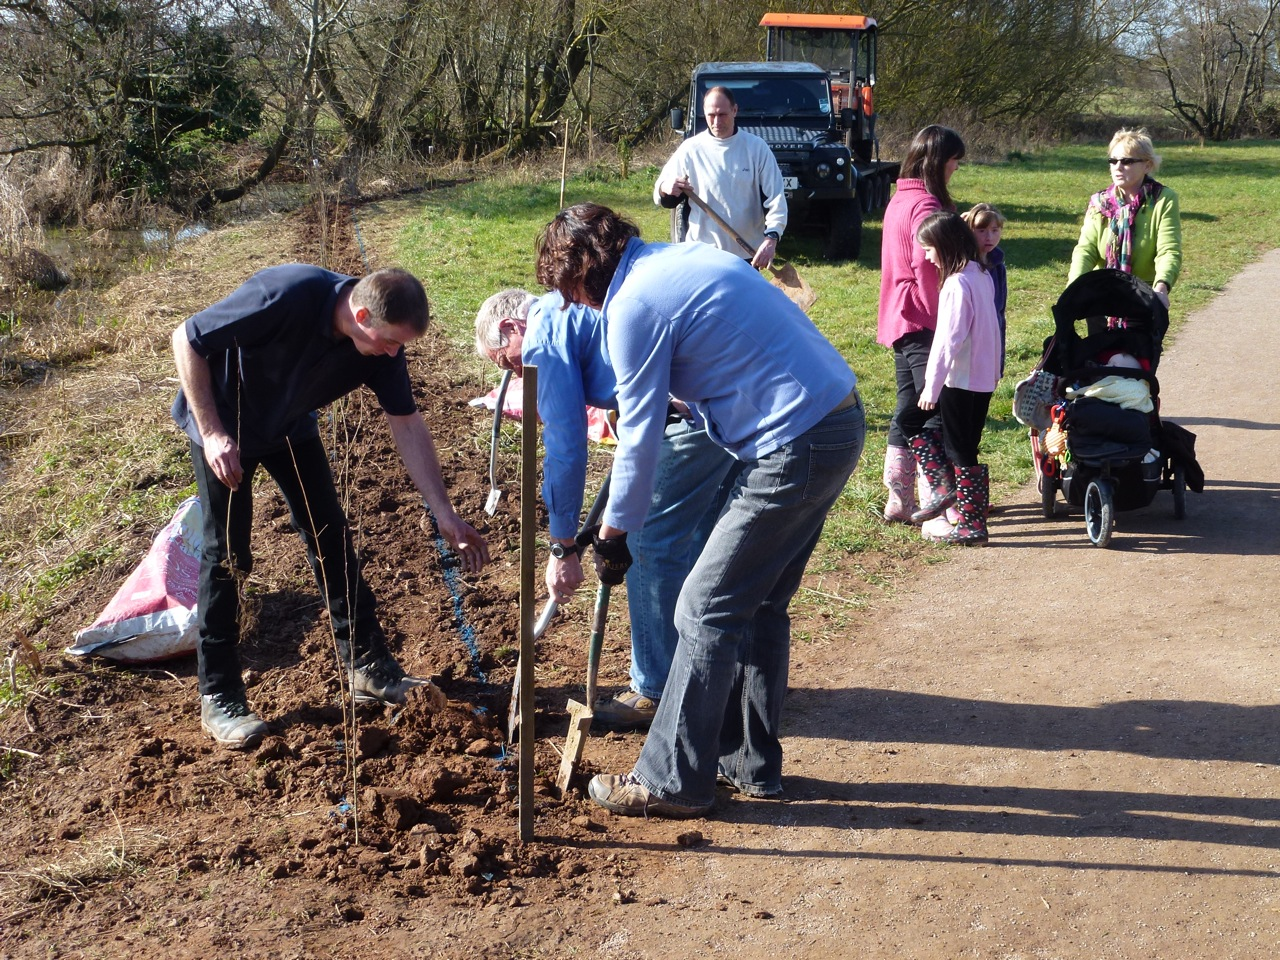 People planting small trees in bare ground to make a new hedge